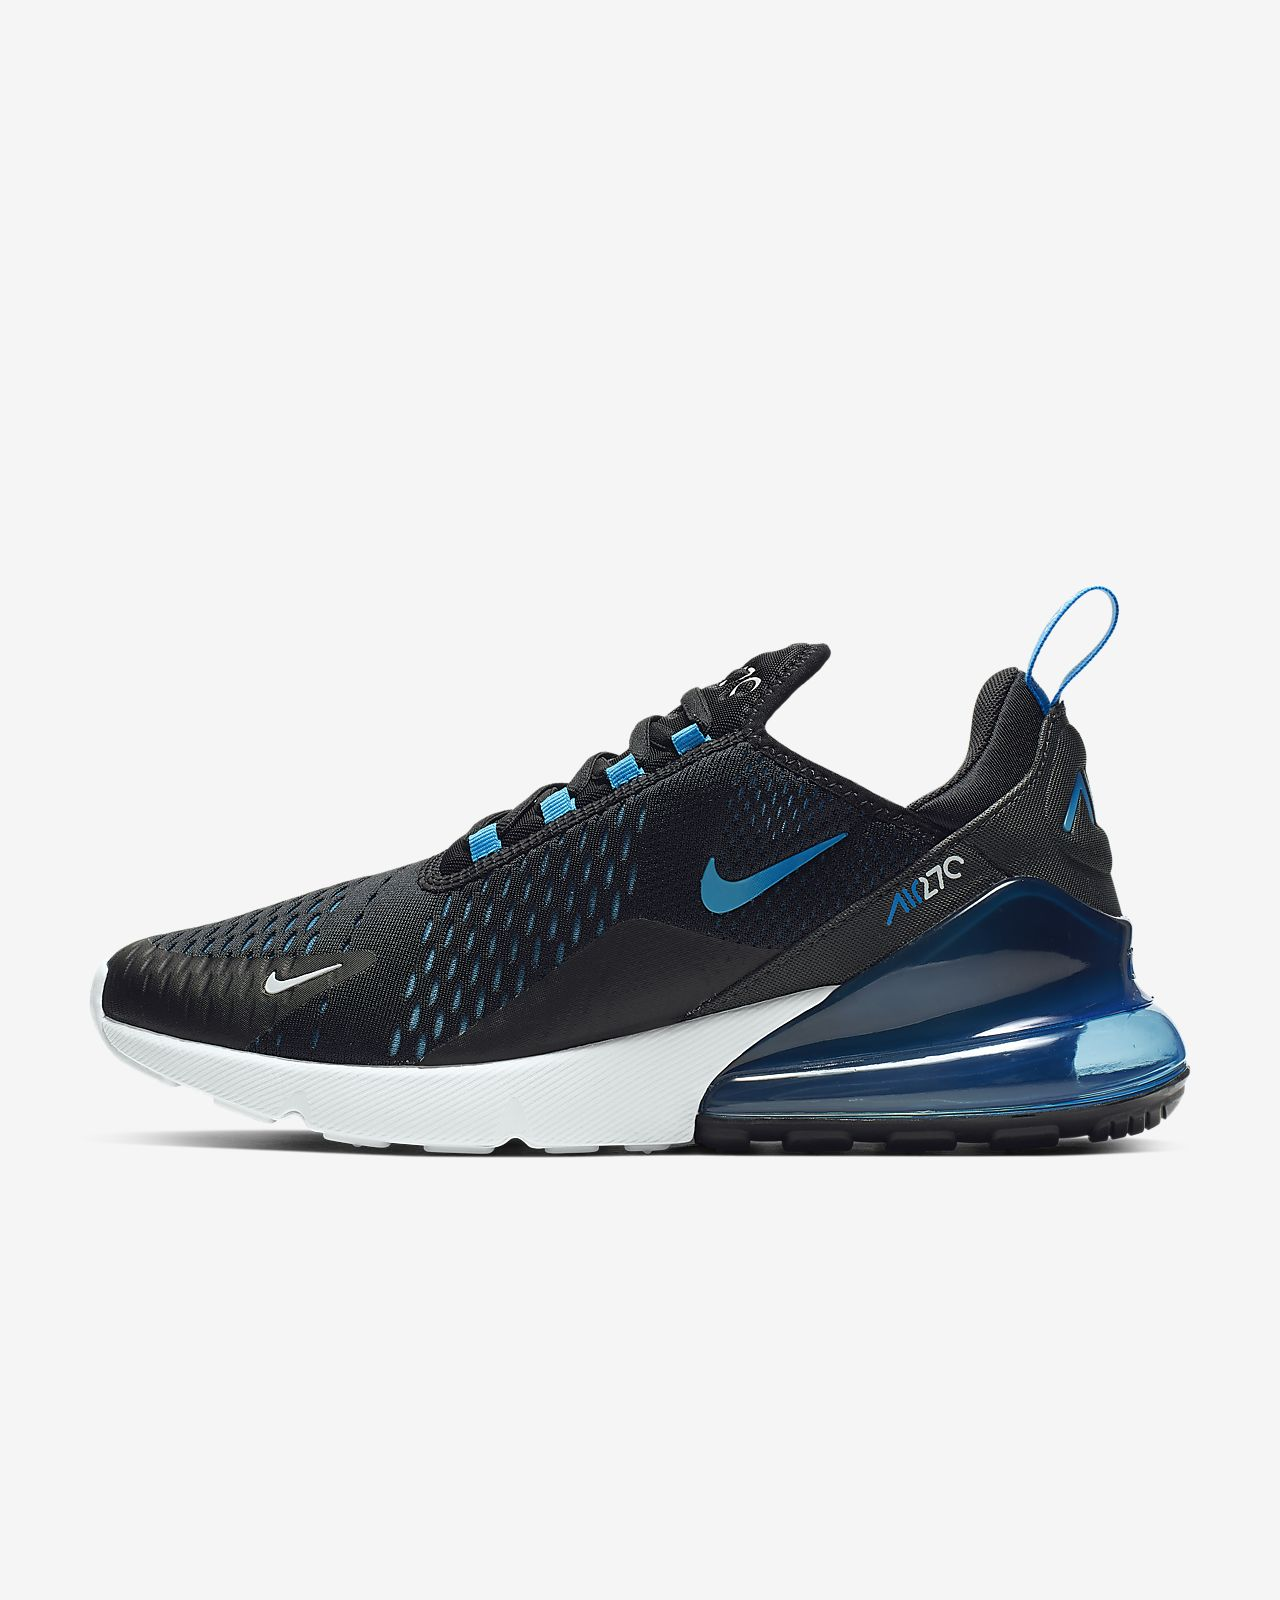 lowest price 546f0 c55d0 ... Nike Air Max 270 Men s Shoe